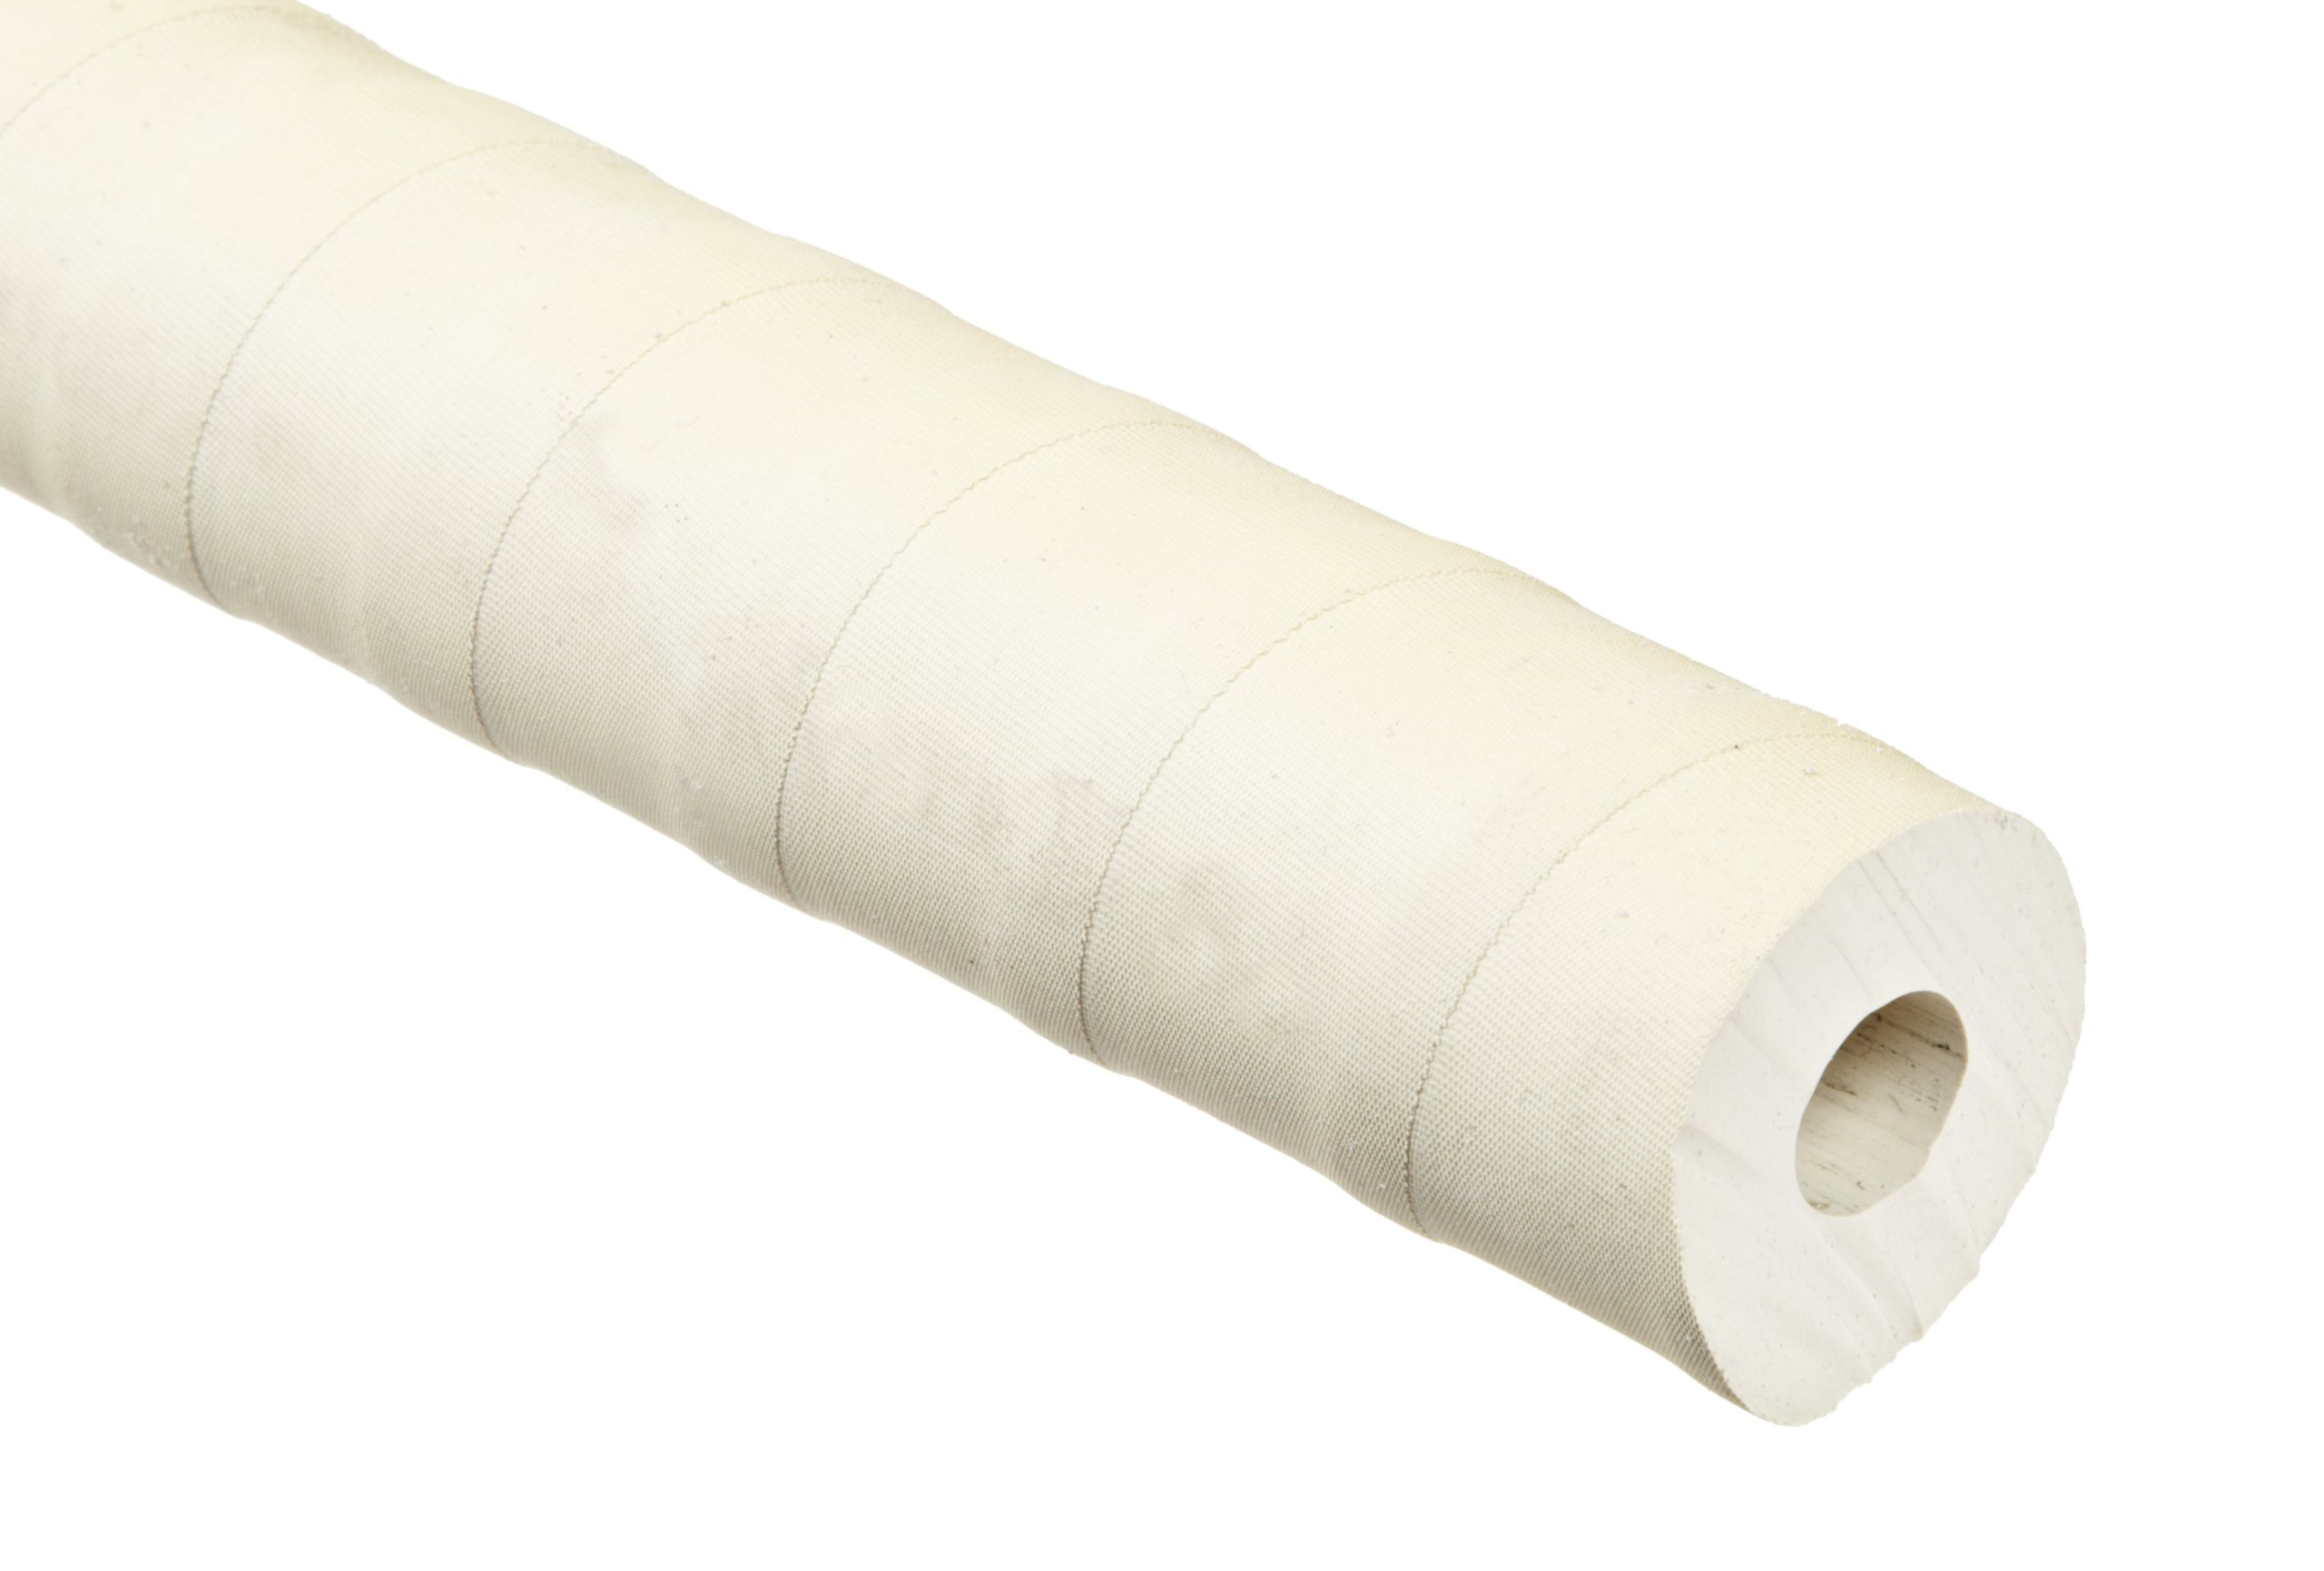 Abrasion-Resistant Gum Rubber Tubing, Rated for Vacuum, Very Flexible, Tan, Opaque, 45A Durometer, 1/2'' ID, 1-1/4'' OD, 3/8'' Wall, 10' Length